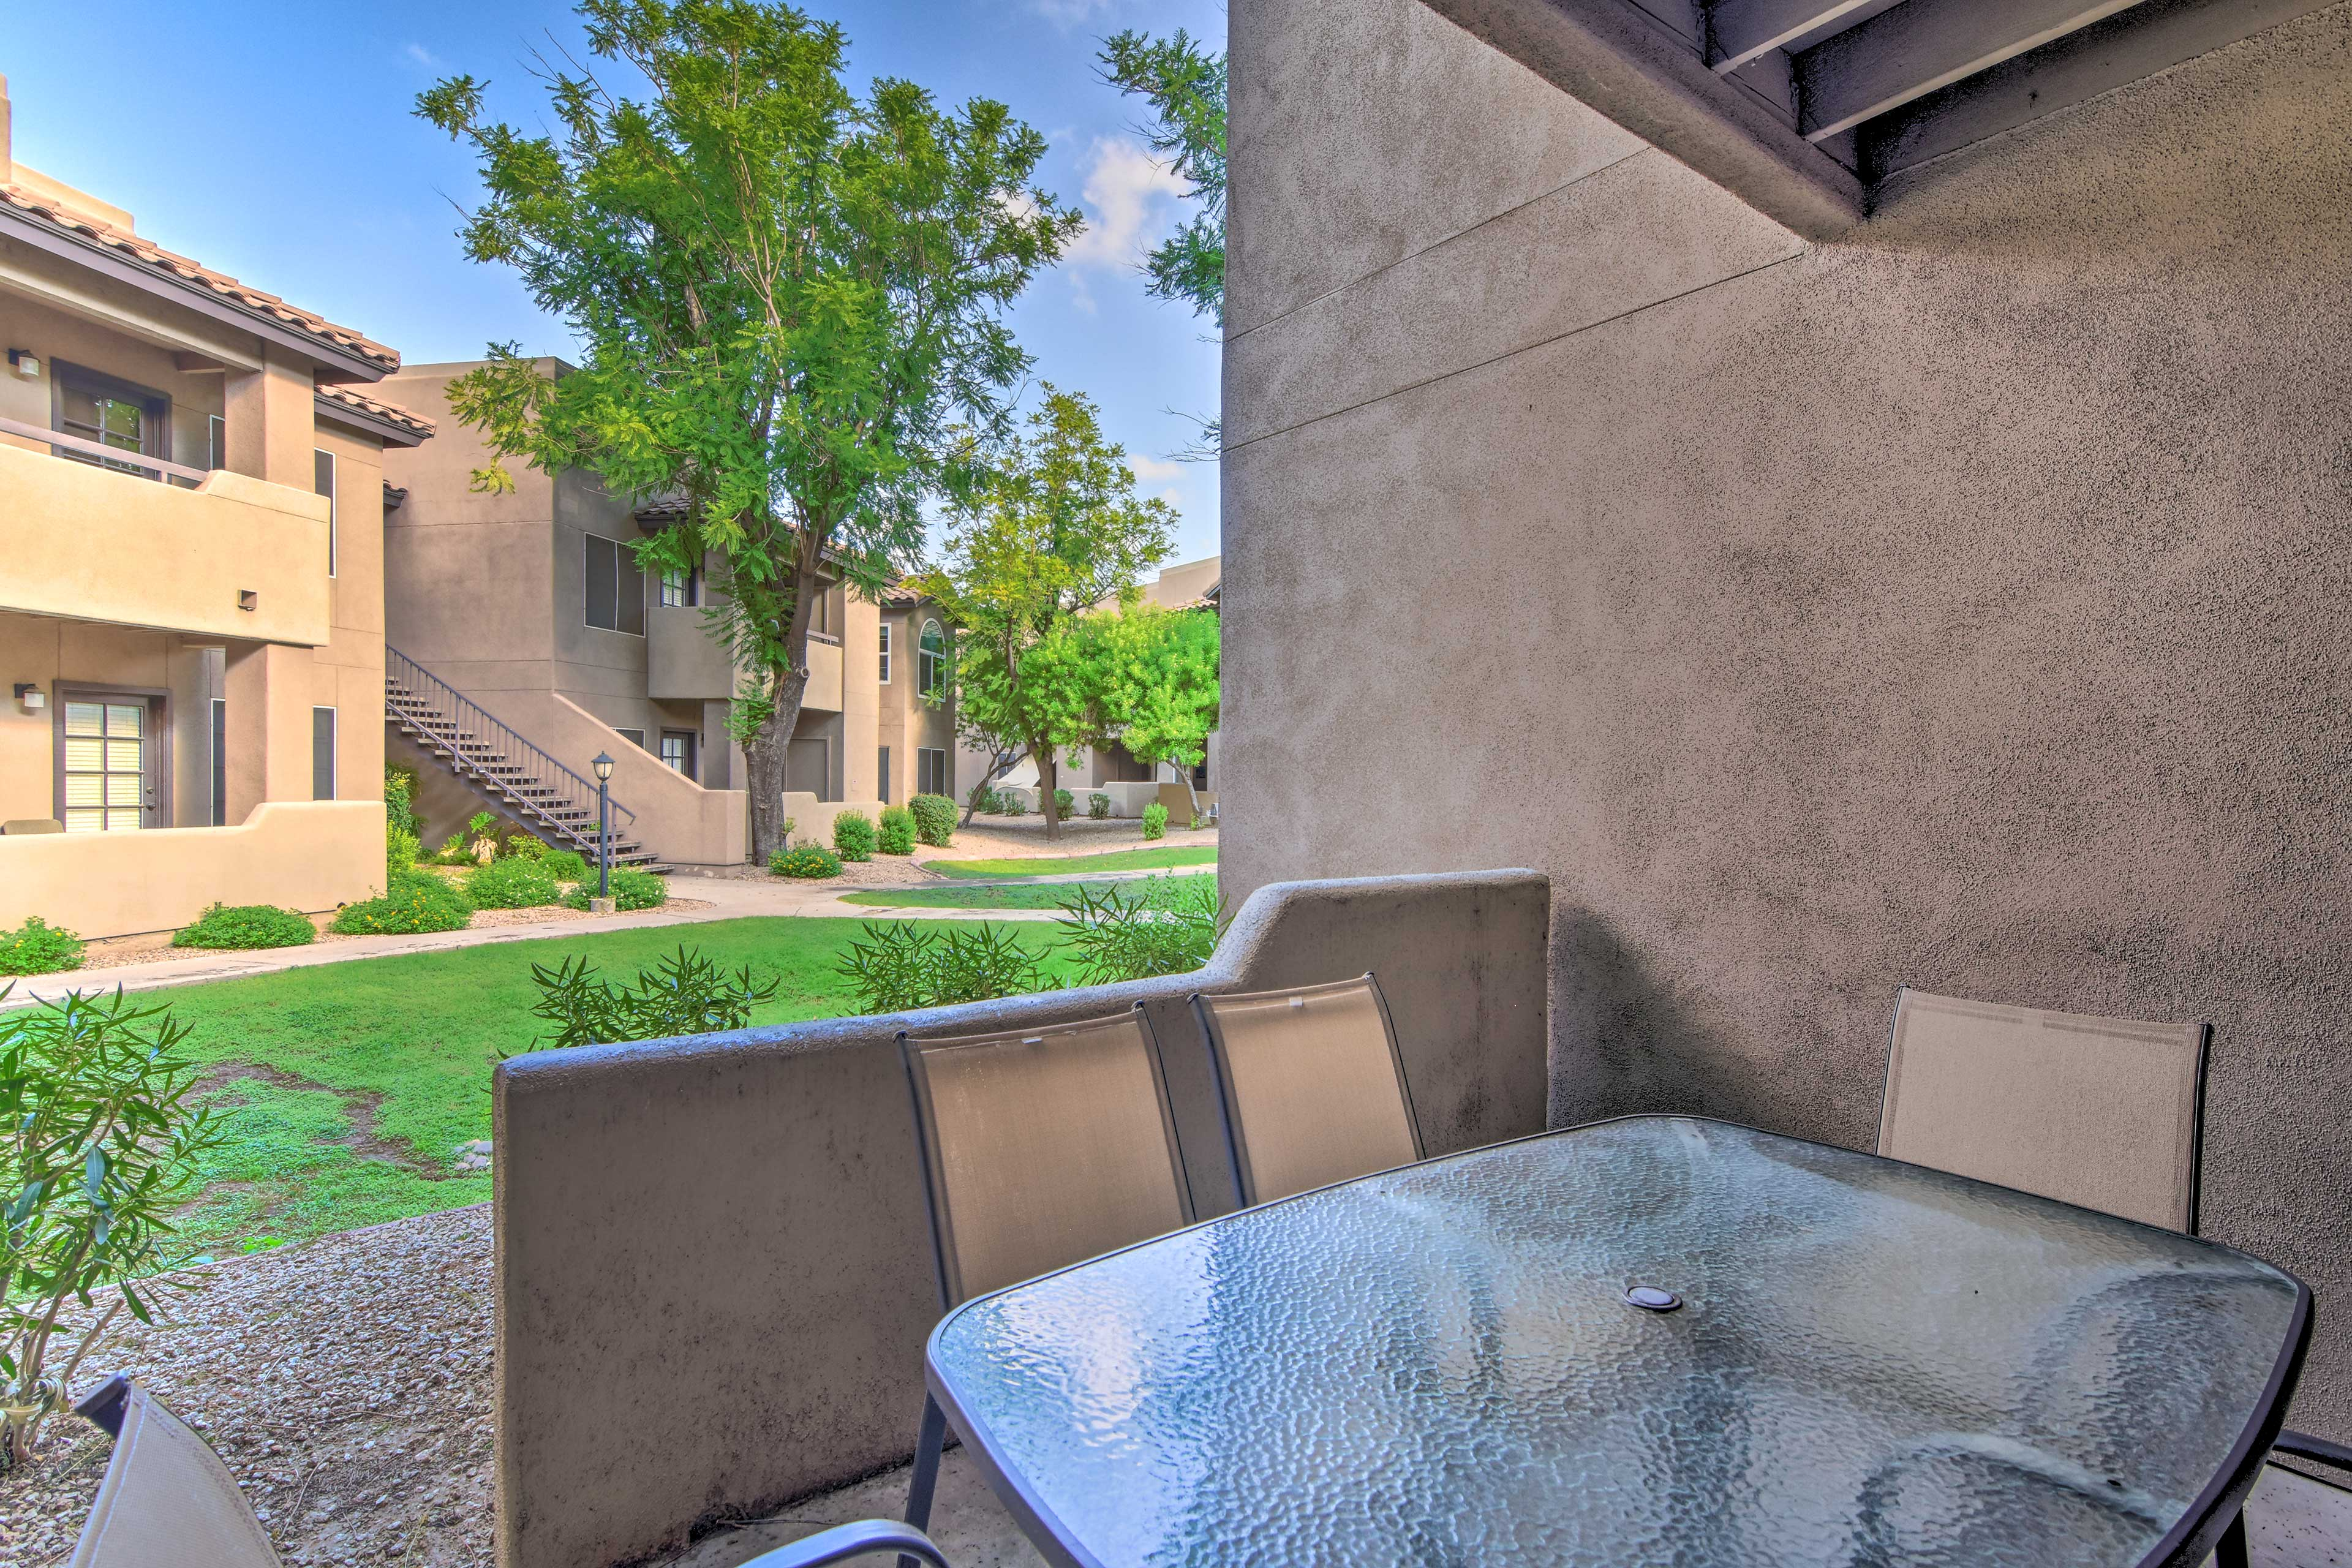 The terrace includes an outdoor table.